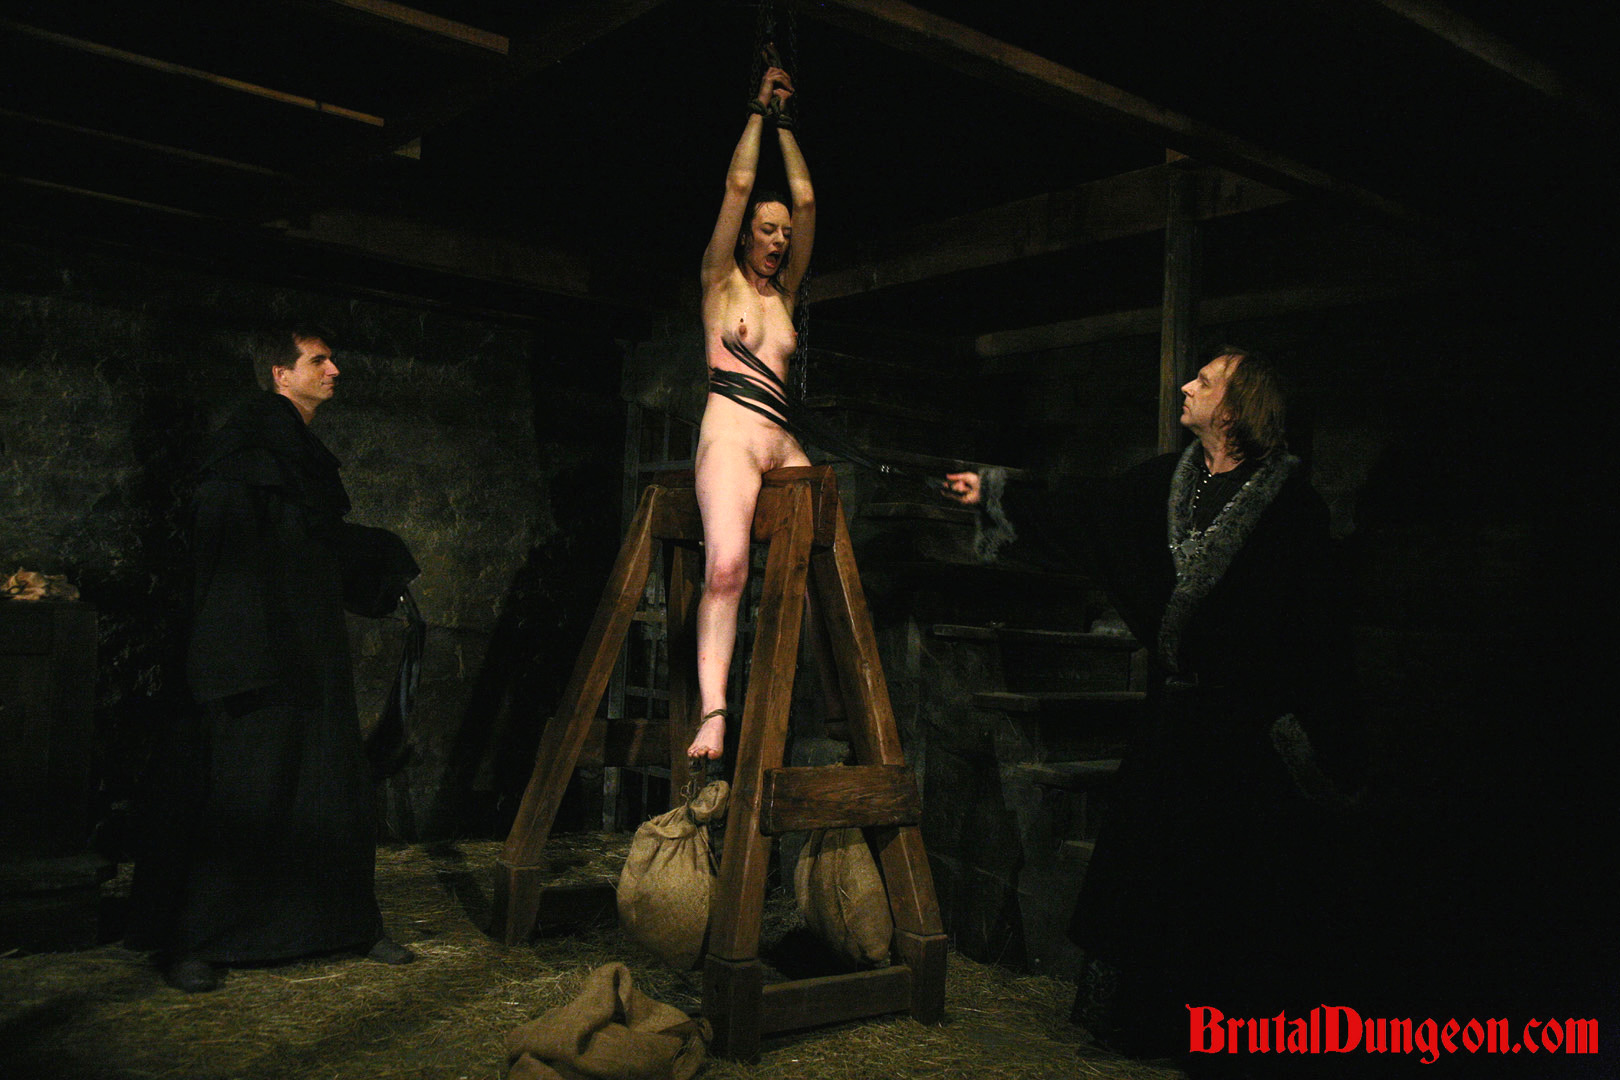 Brunette mathilda imprisoned bdsm gang bang. Pleasant brunette Mathilda is a sex addict and will have sex with anyone that wants a taste. She must be stopped and arrested. Mathilda must endure imprisonment, BDSM gang bang, domination, rope bondage and suspension, spanking, slapping, humiliation, fingering, deepthroat blowjob, breast, nipple and cunt torment with an interesting device and weights.